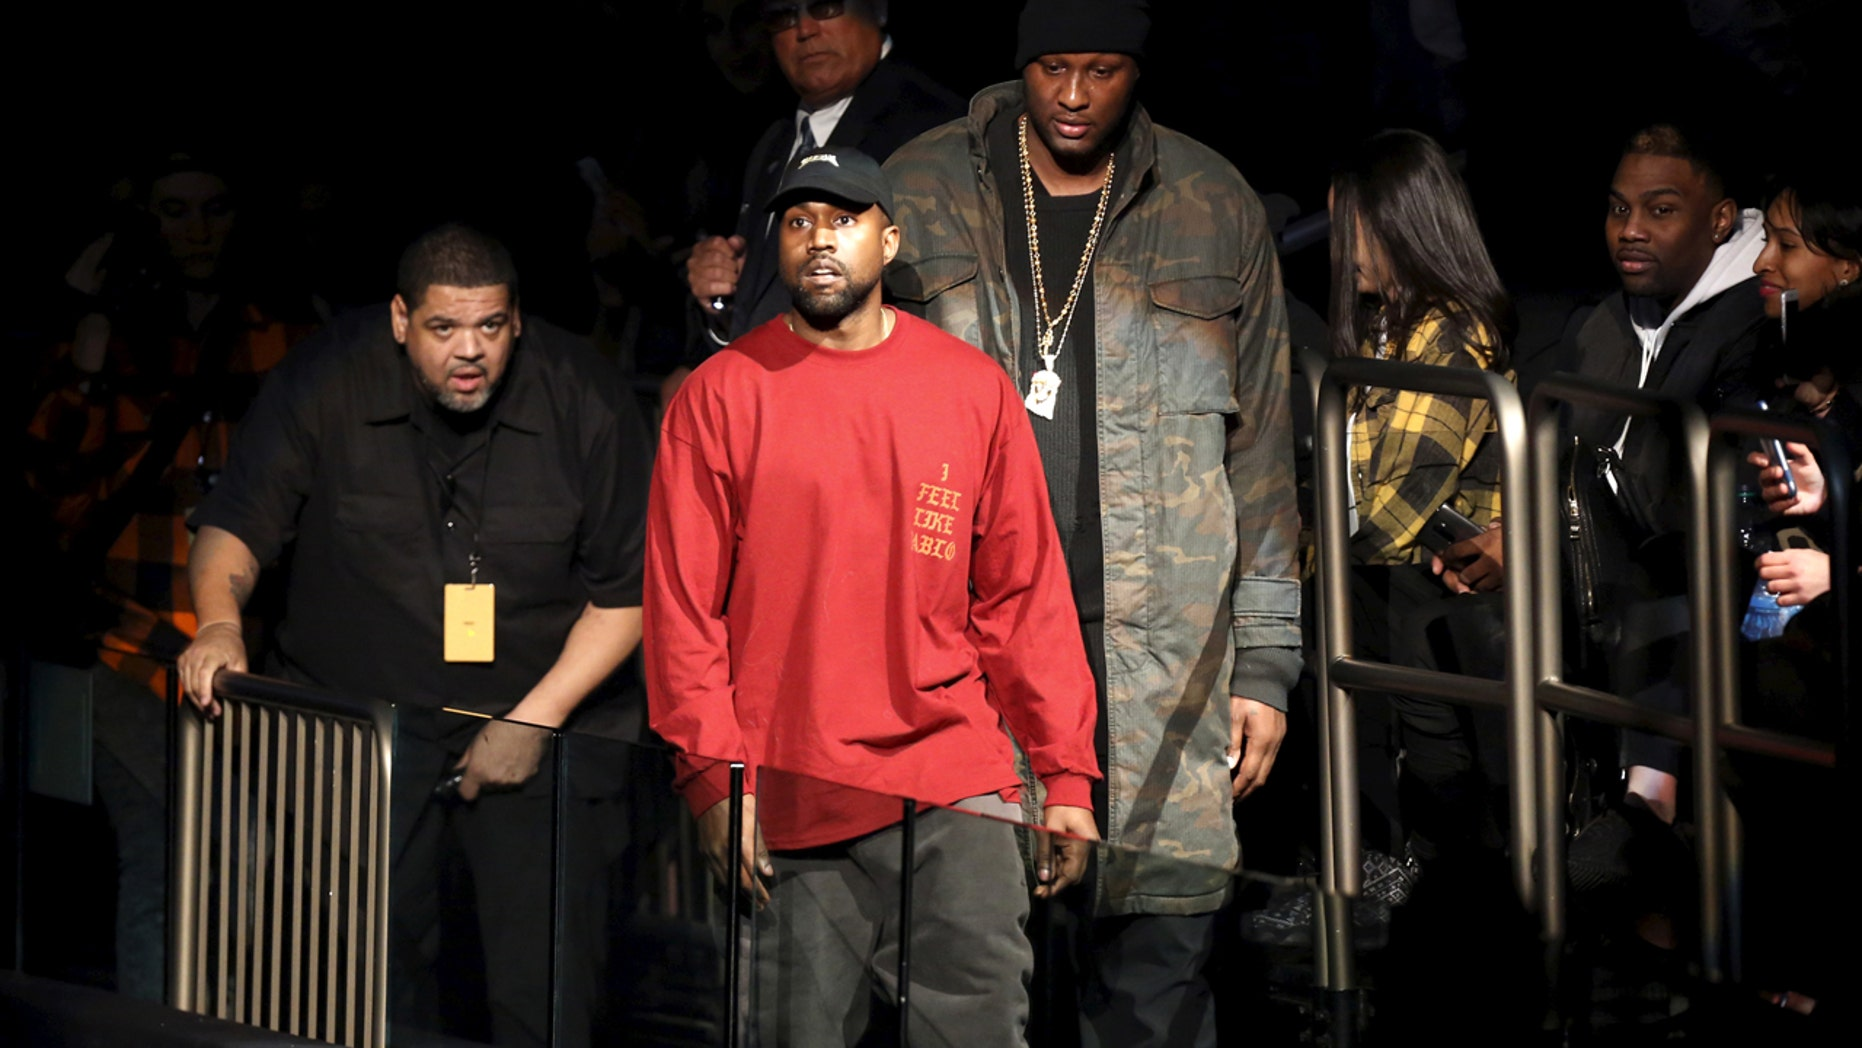 """Kanye West (C) and Lamar Odom arrive at Kanye West's Yeezy Season 3 presentation and listening party for the new """"The Life of Pablo"""" album during New York Fashion Week February 11, 2016."""